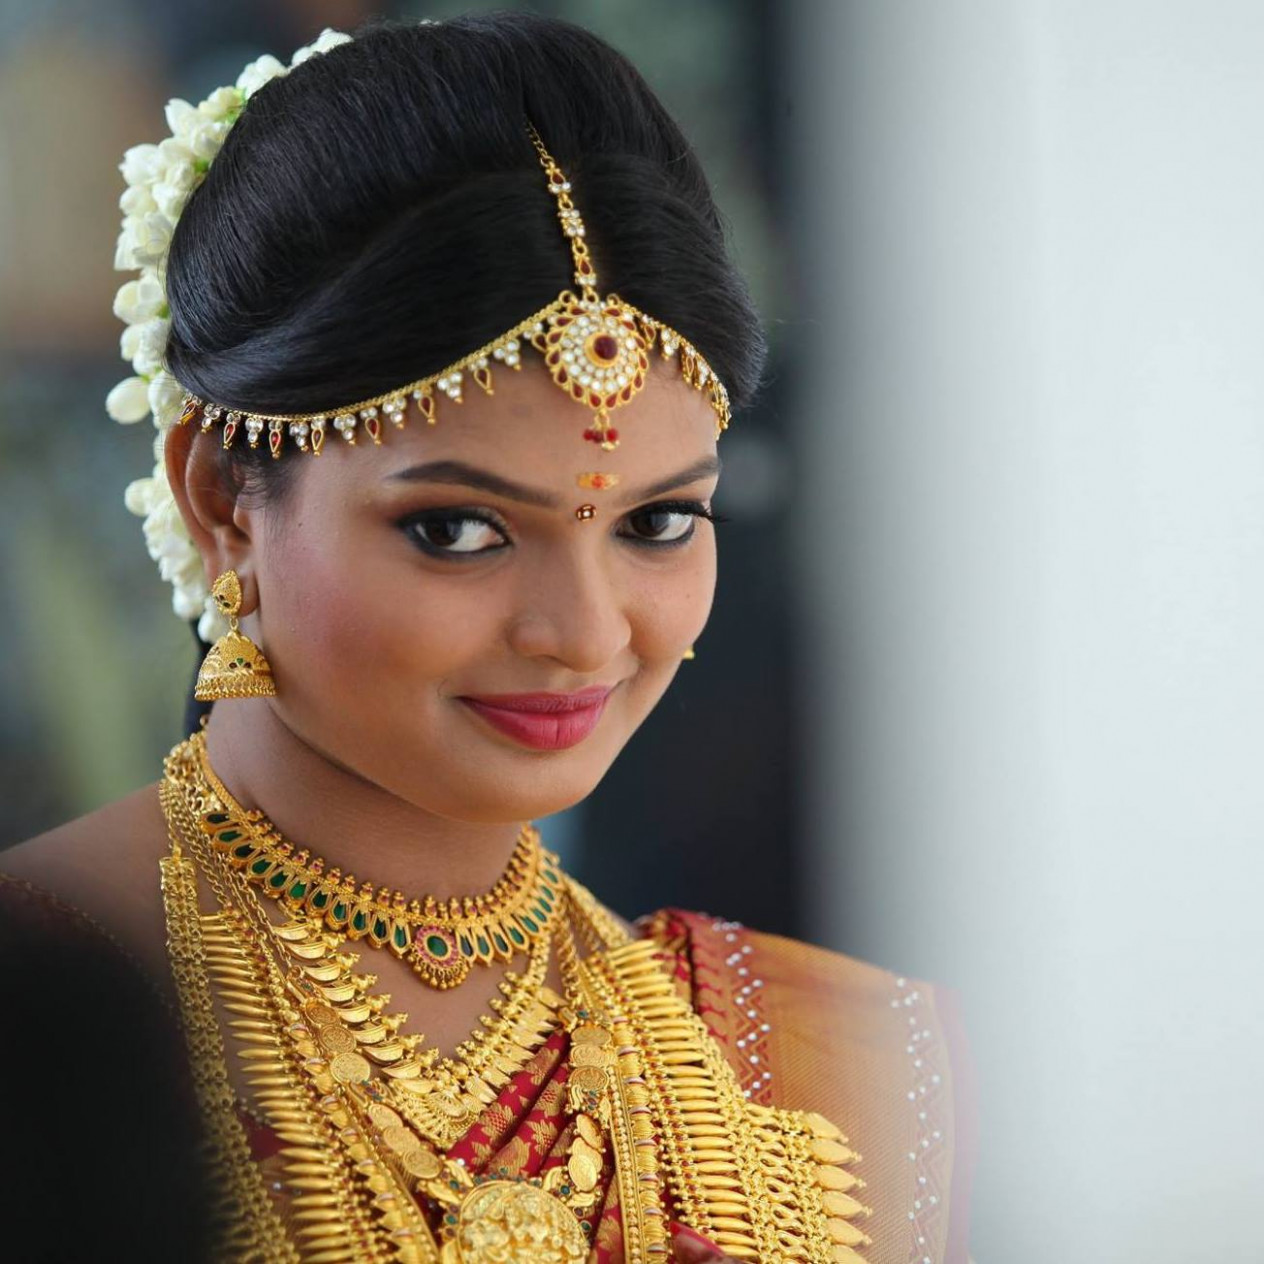 Hindu Bride Photos